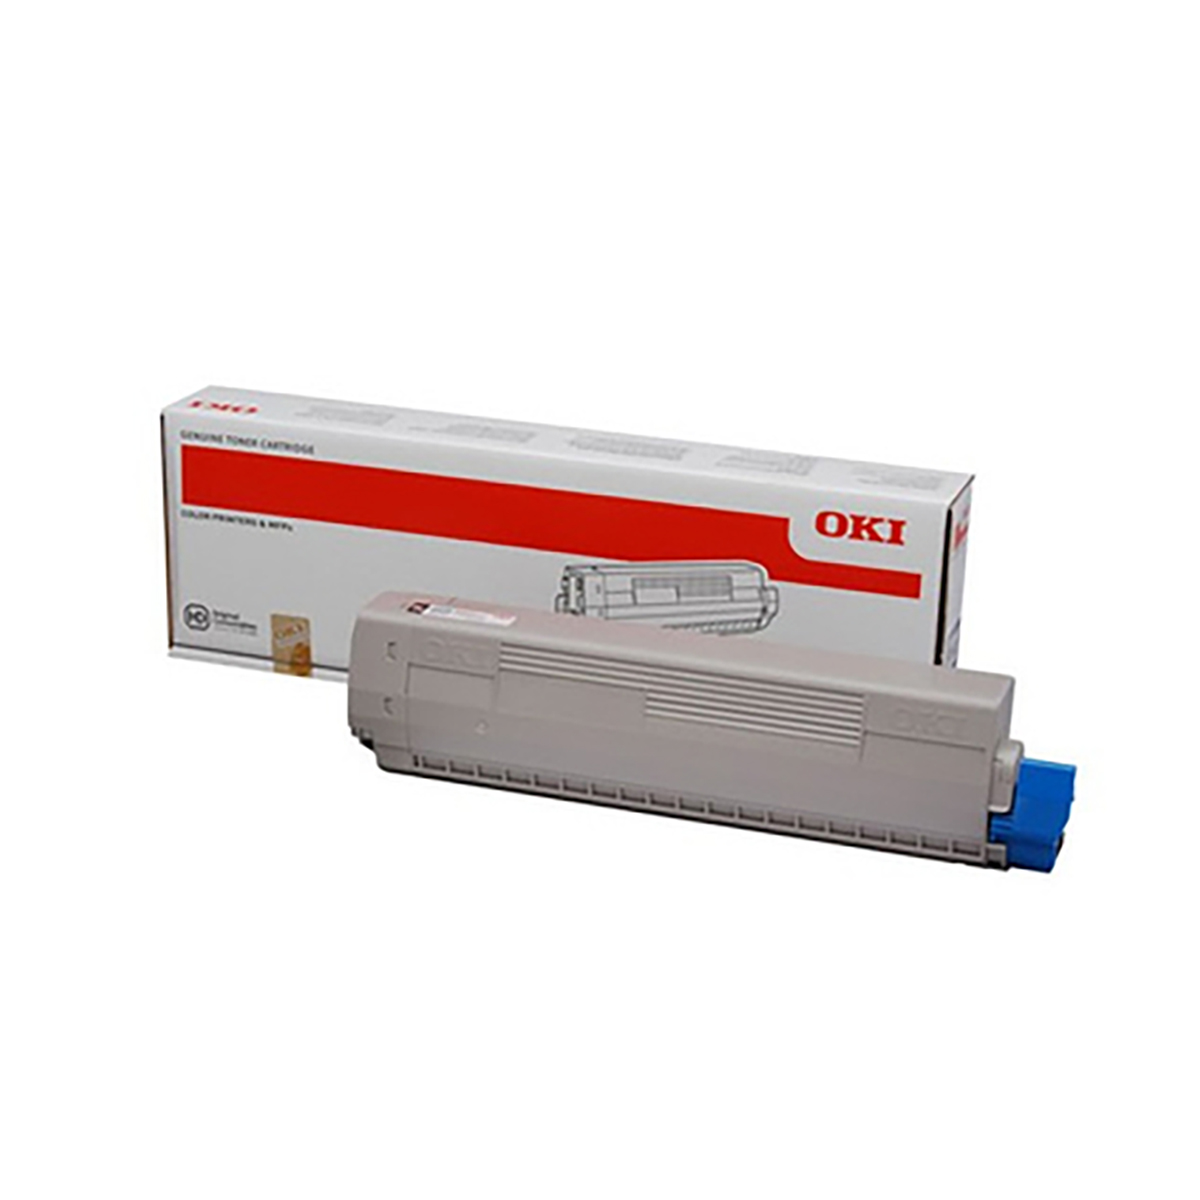 Oki C332/MC363 Laser Toner Cartridge High Yield Page Life 3000pp Magenta Ref 46508710